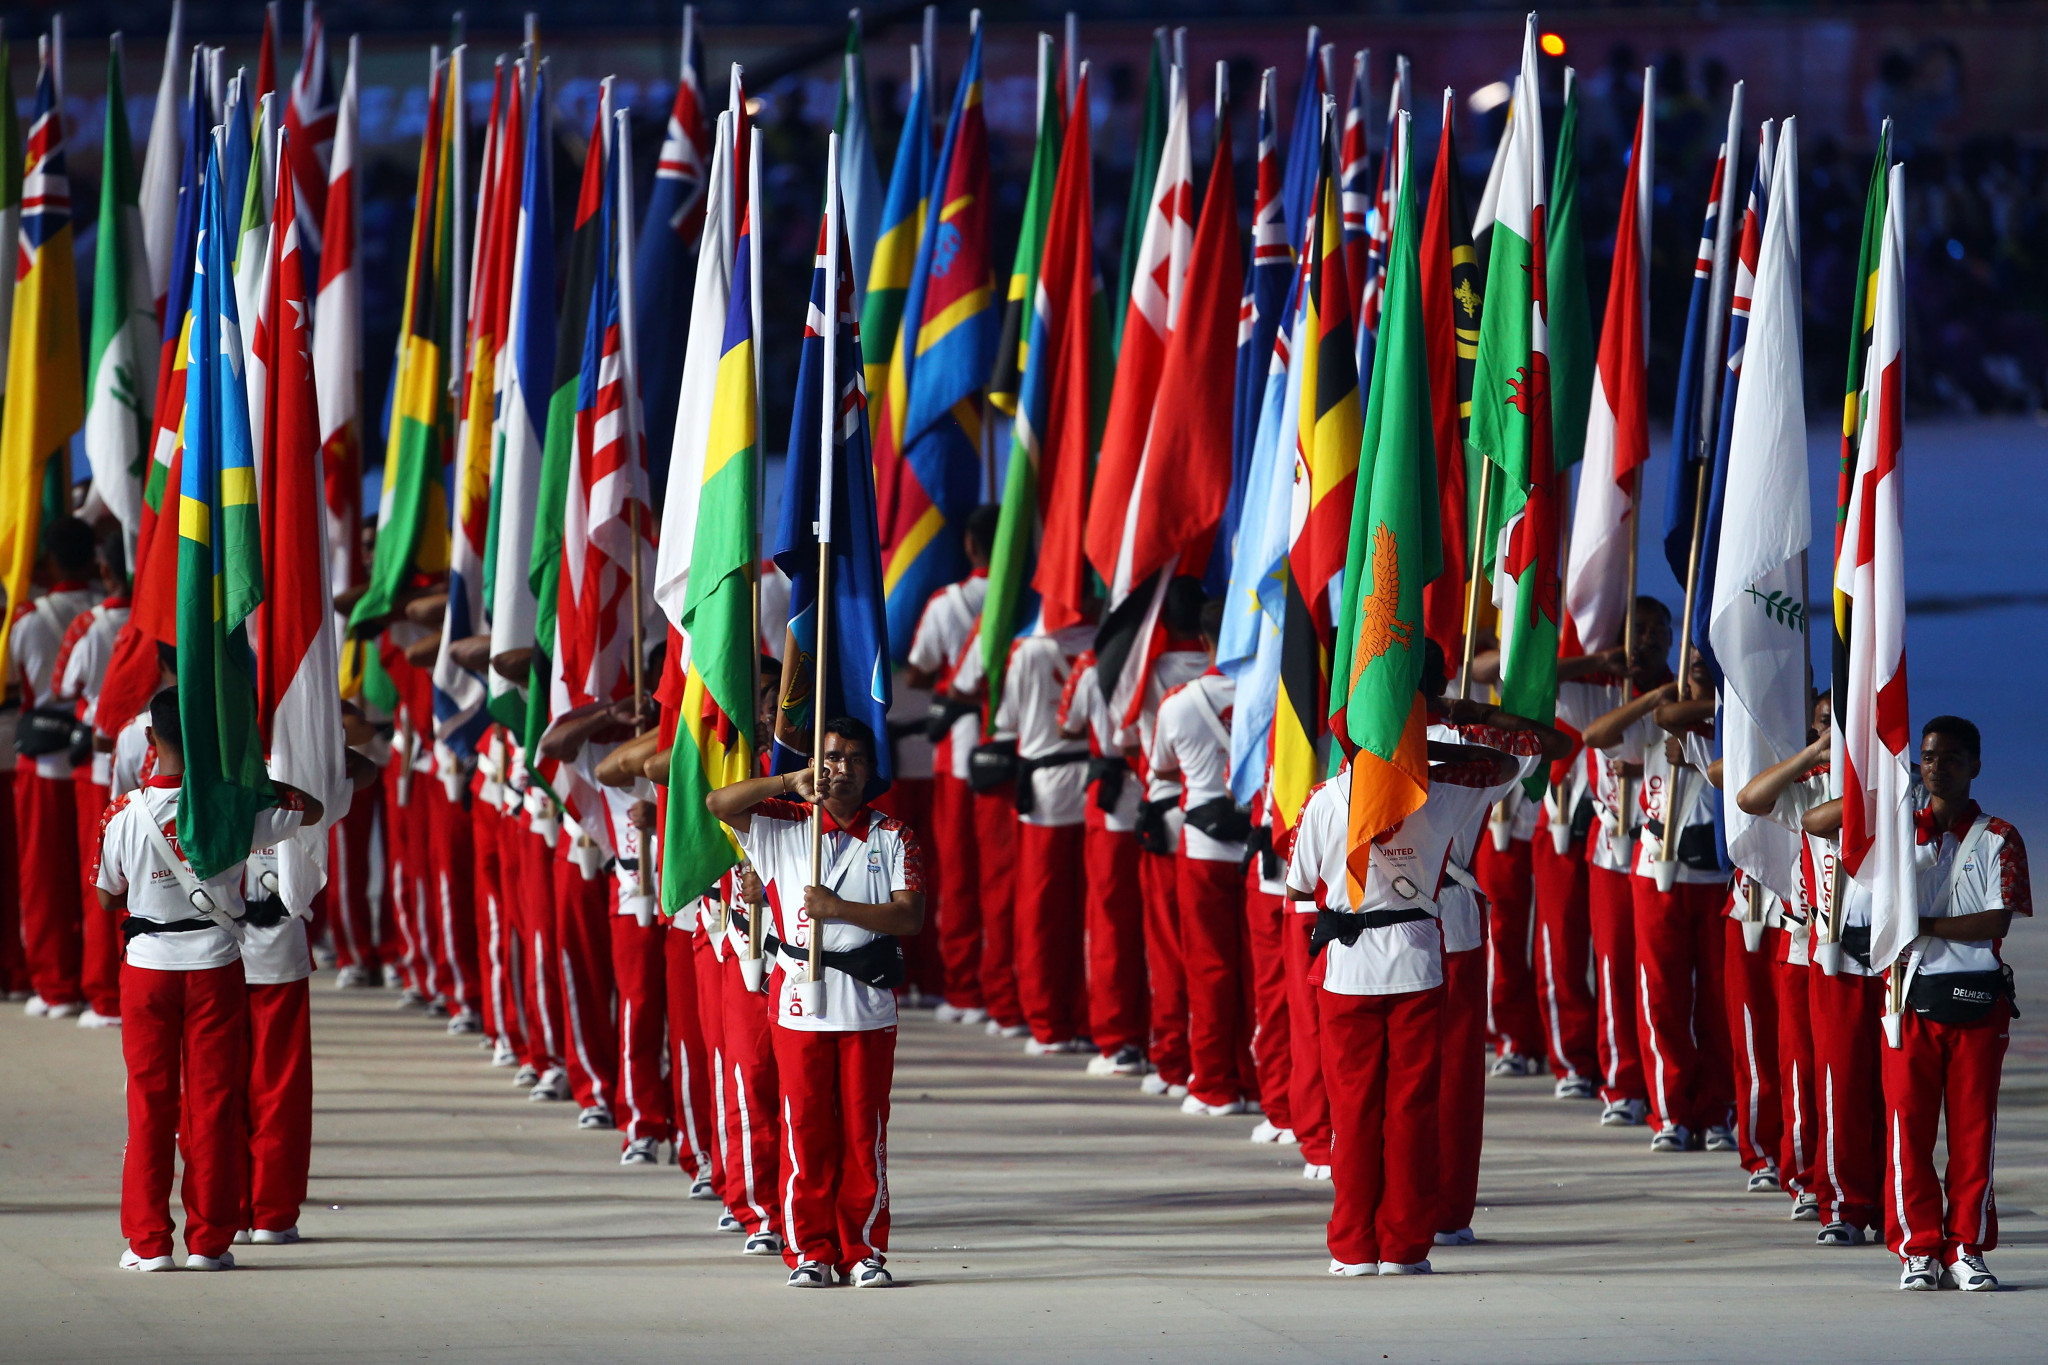 Flag bearers stand during the Opening Ceremony for the Delhi 2010 Commonwealth Games at Jawaharlal Nehru Stadium on October 3, 2010 in Delhi, India ©Getty Images